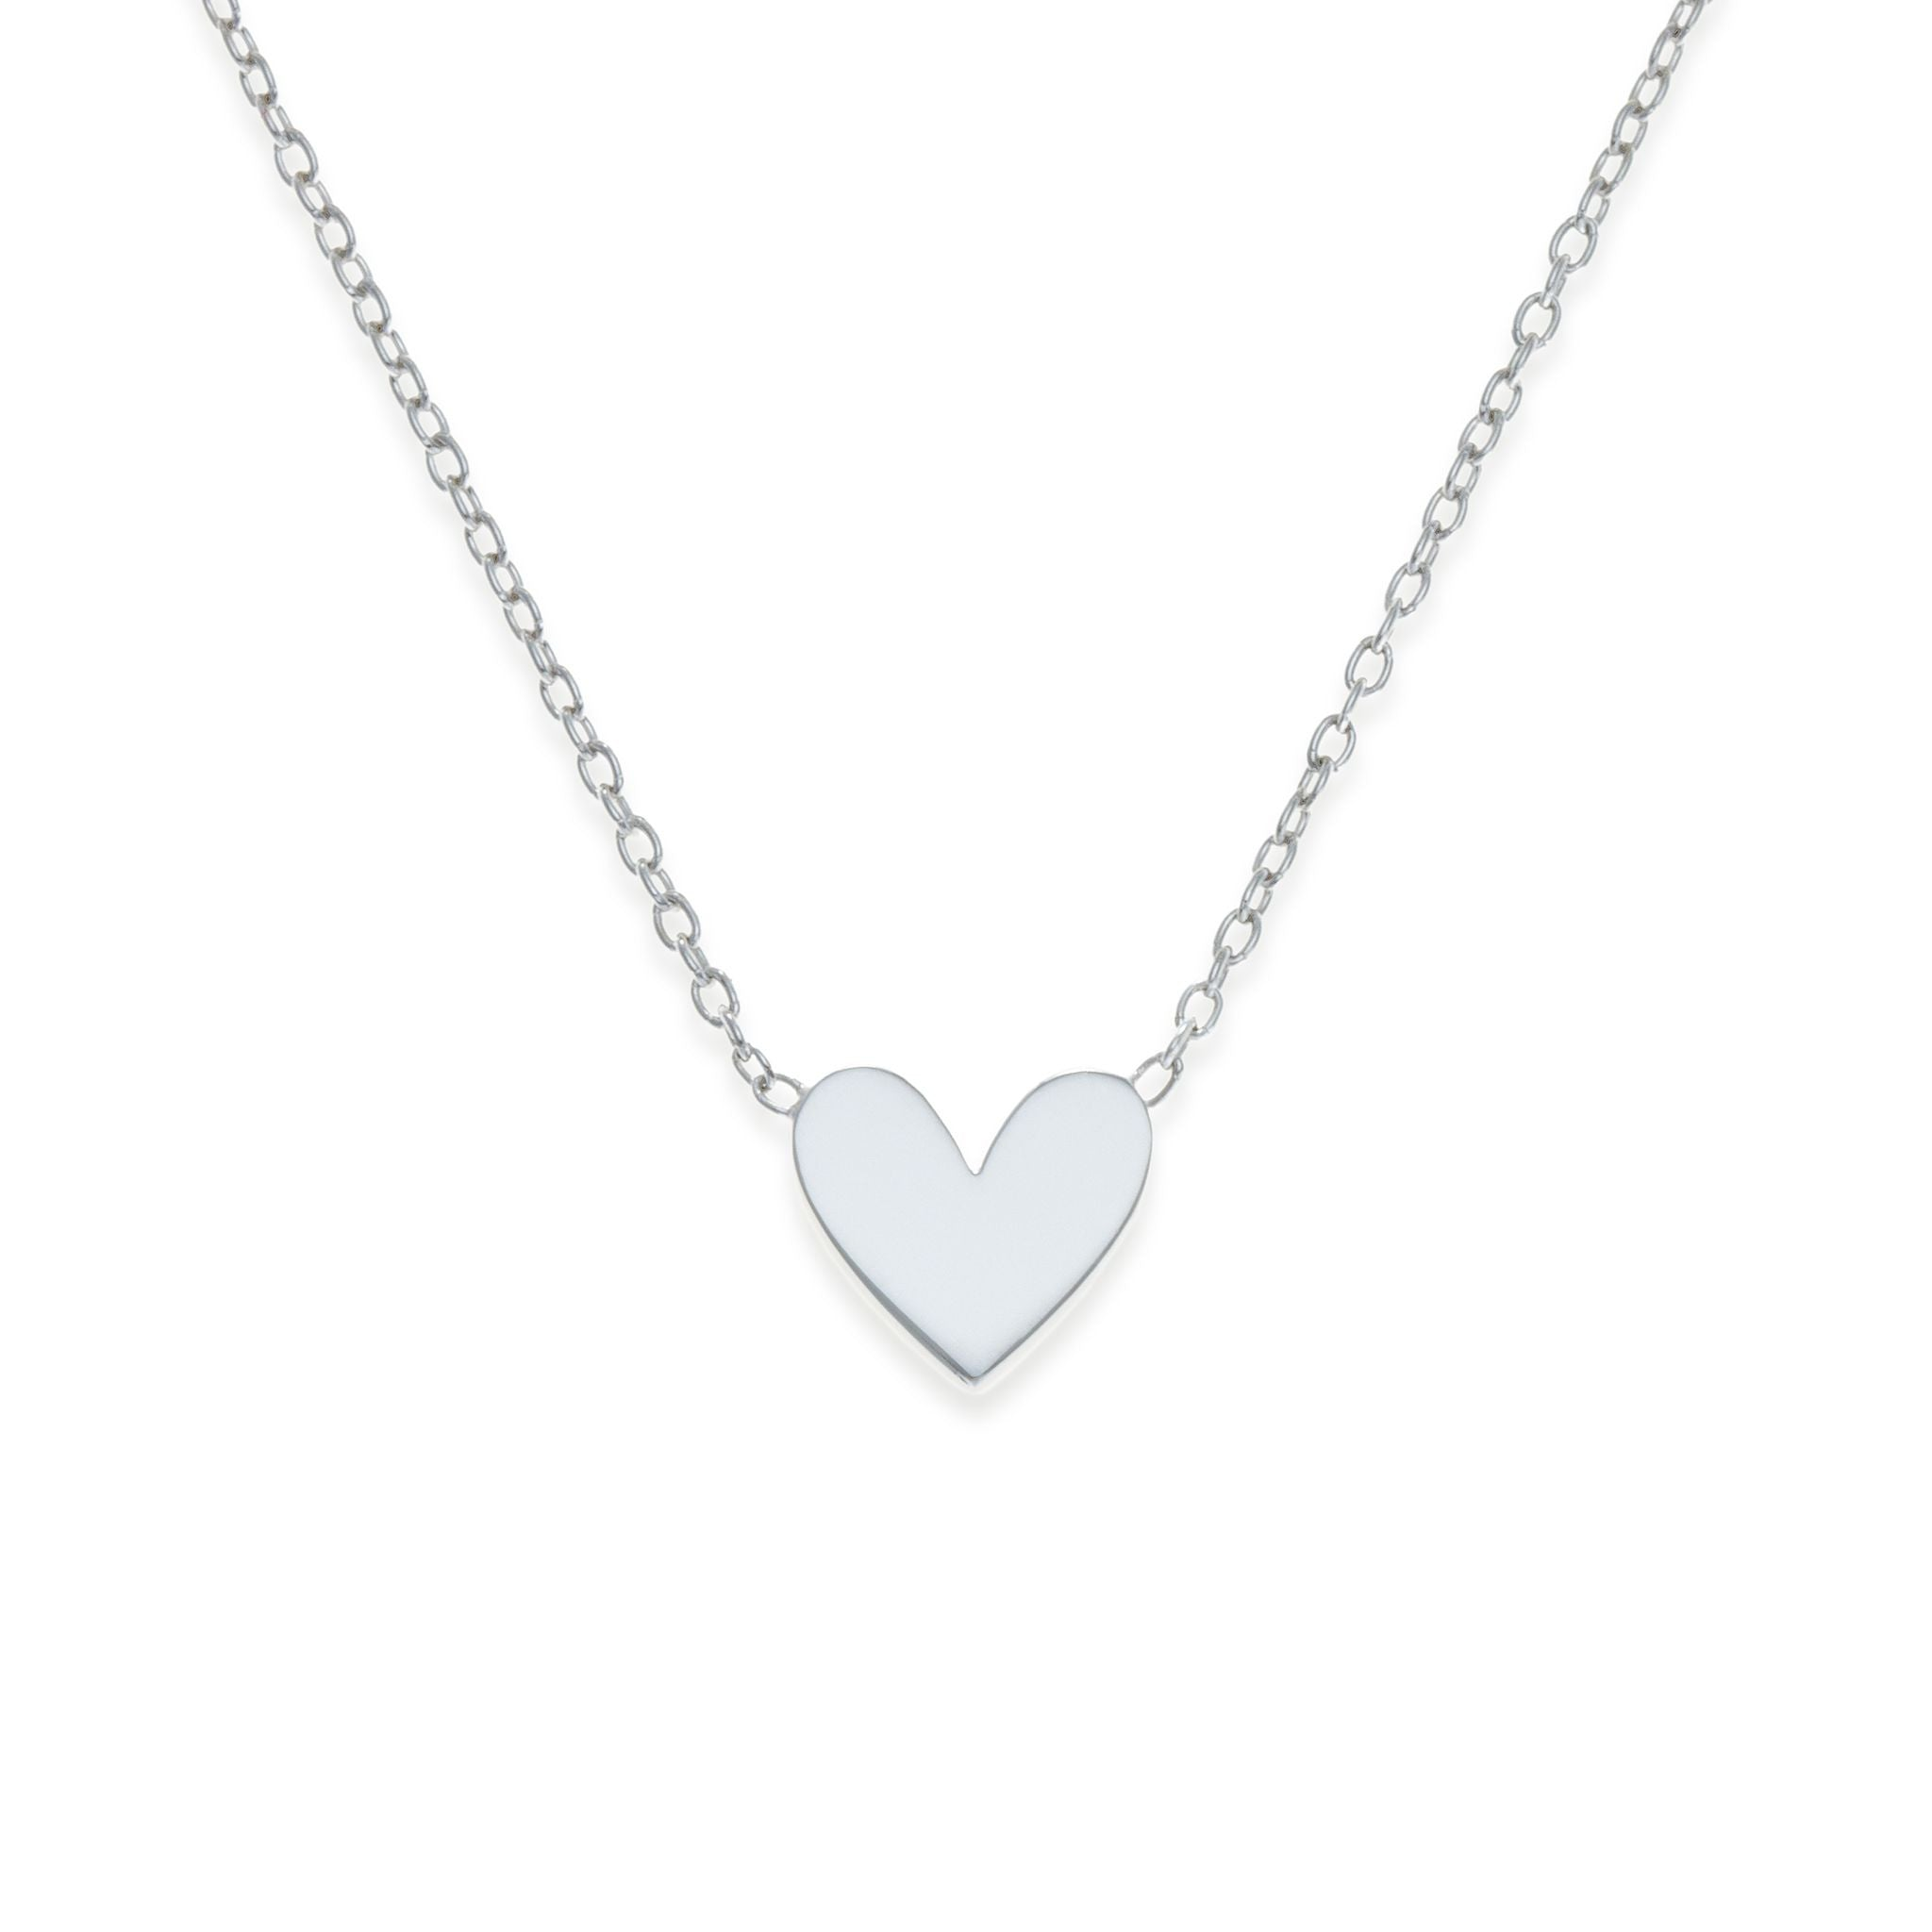 Sterling silver heart necklace mother daughter jewelry kith sterling silver heart necklace mother daughter jewelry kith kin mini me aloadofball Images